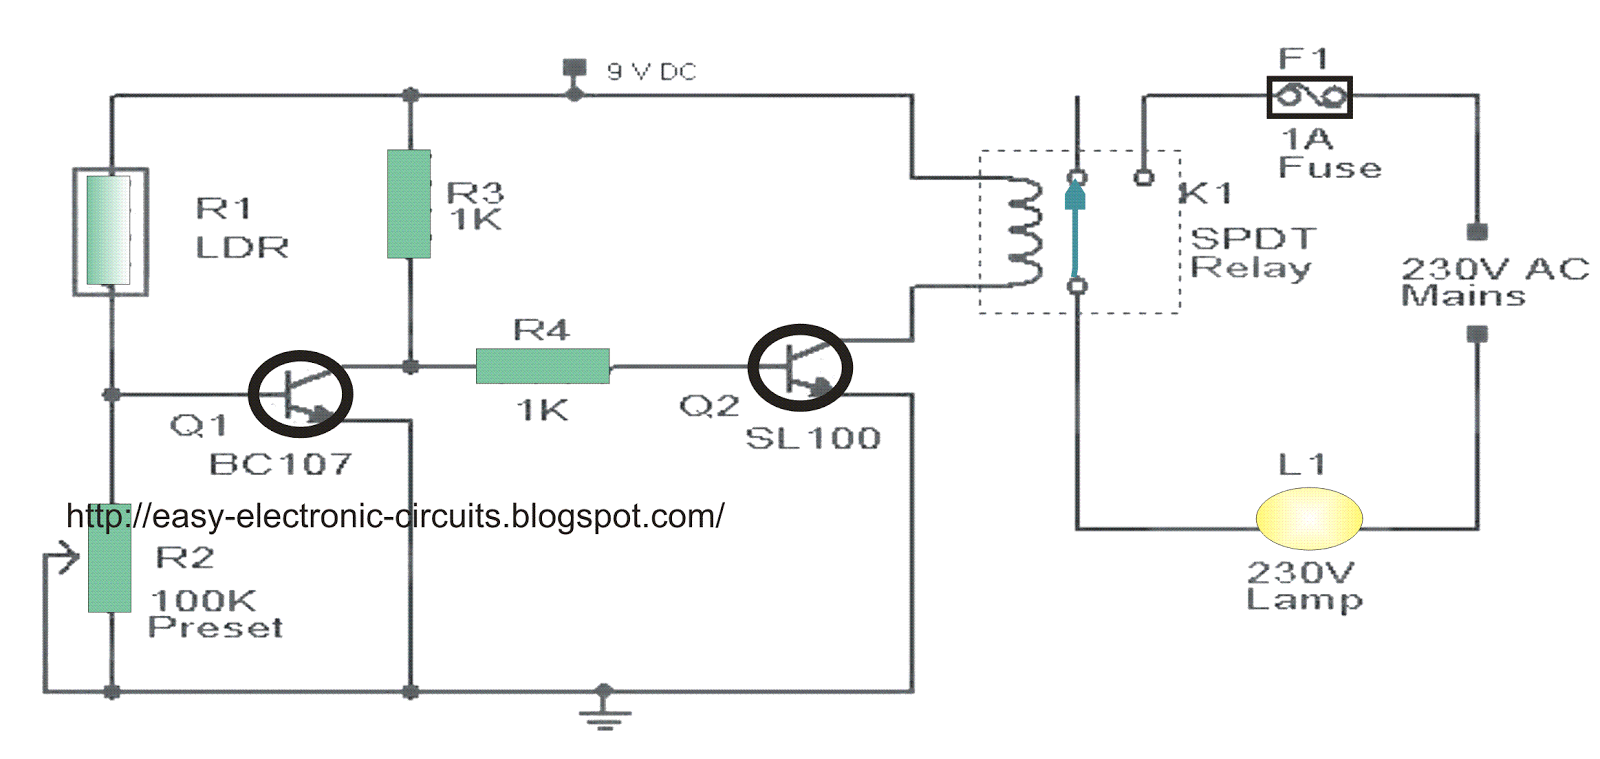 Application Note About Electrochemical Sensors Ec410 Oxygen Sensor Operation And Peformance 993 moreover O2 Sensor Type D 11 in addition Chemical Analysis And Environmental Monitoring further Gas Sensor Location besides E85 Sensor O2. on electrochemical gas sensor circuit